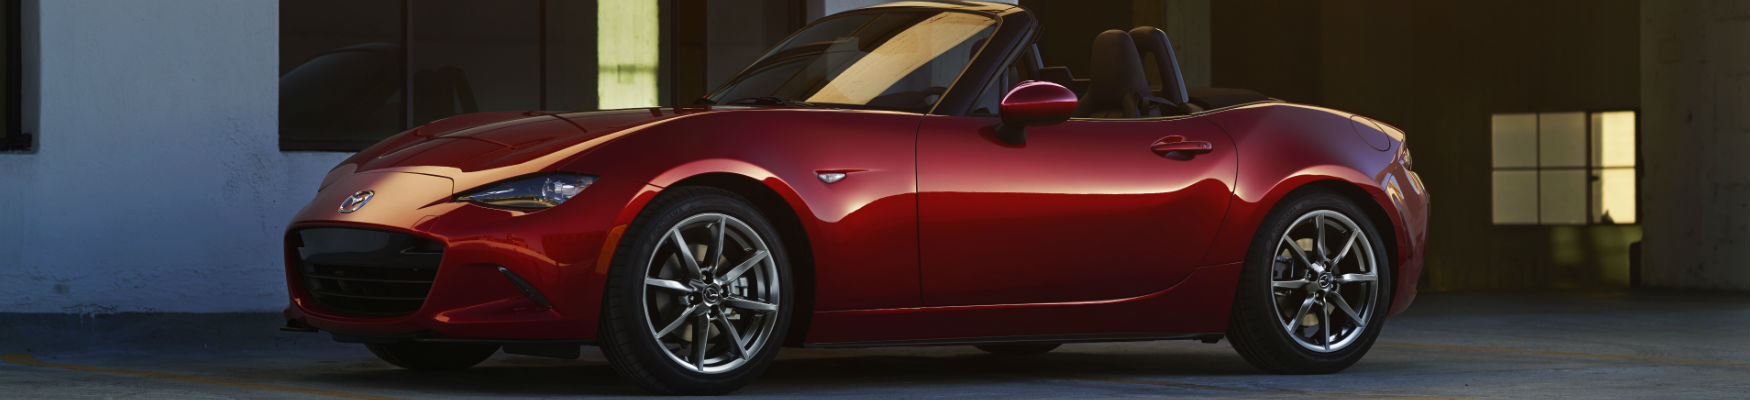 Is the Mazda Miata a girl car?